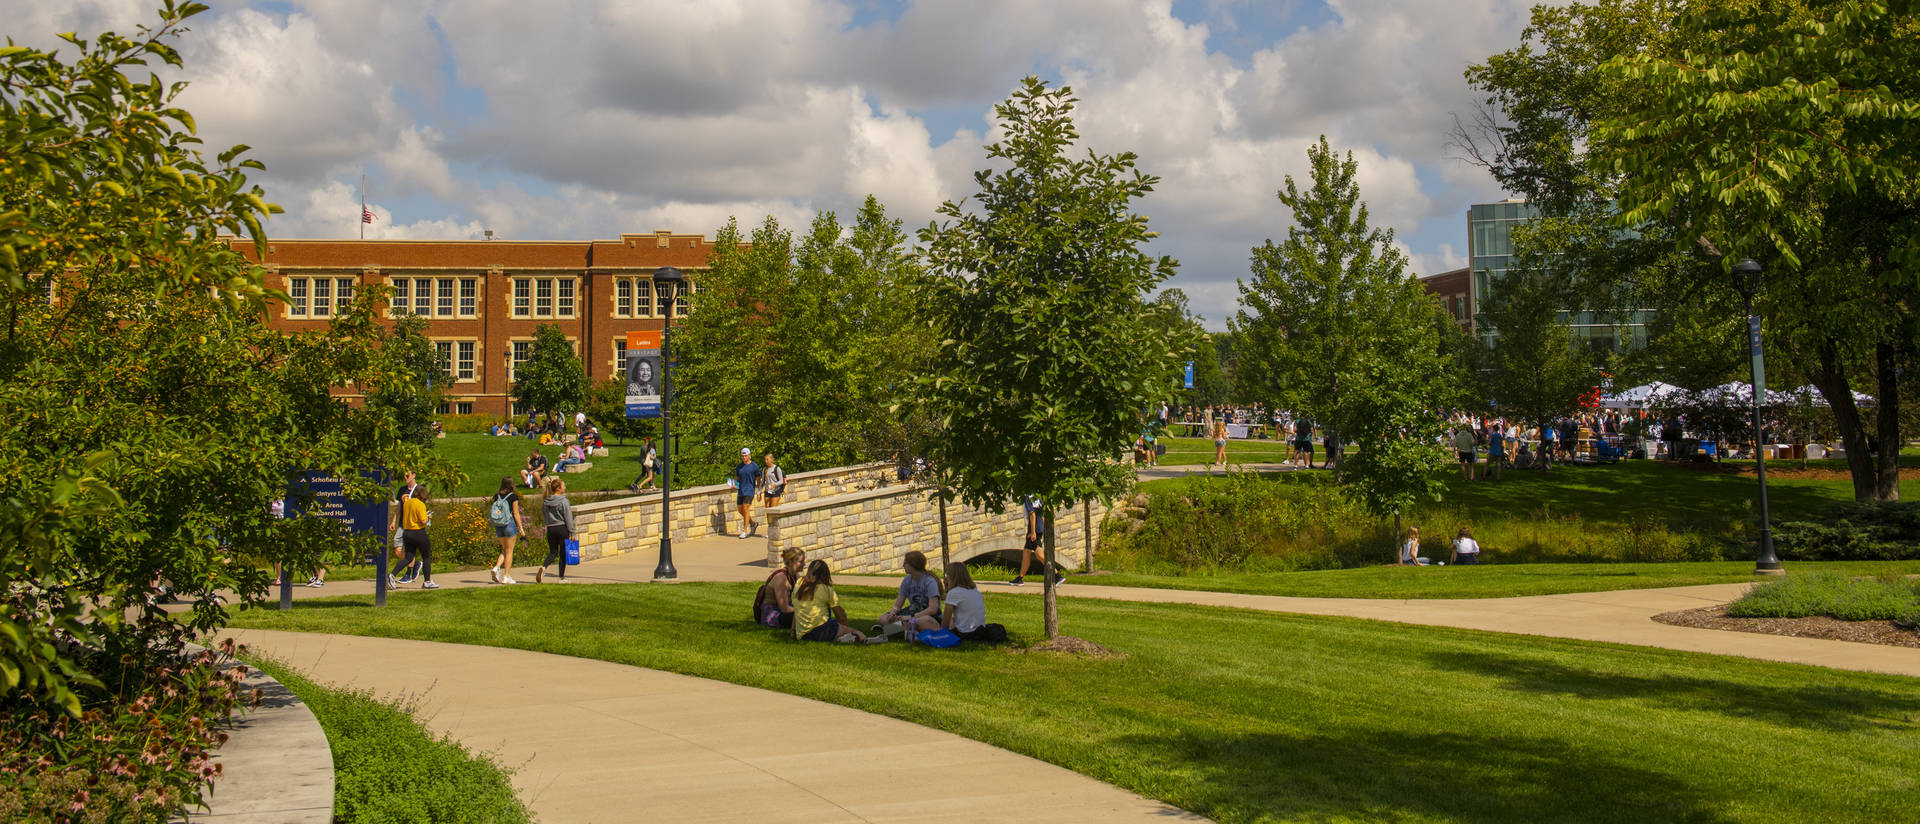 Campus mall with students in fall